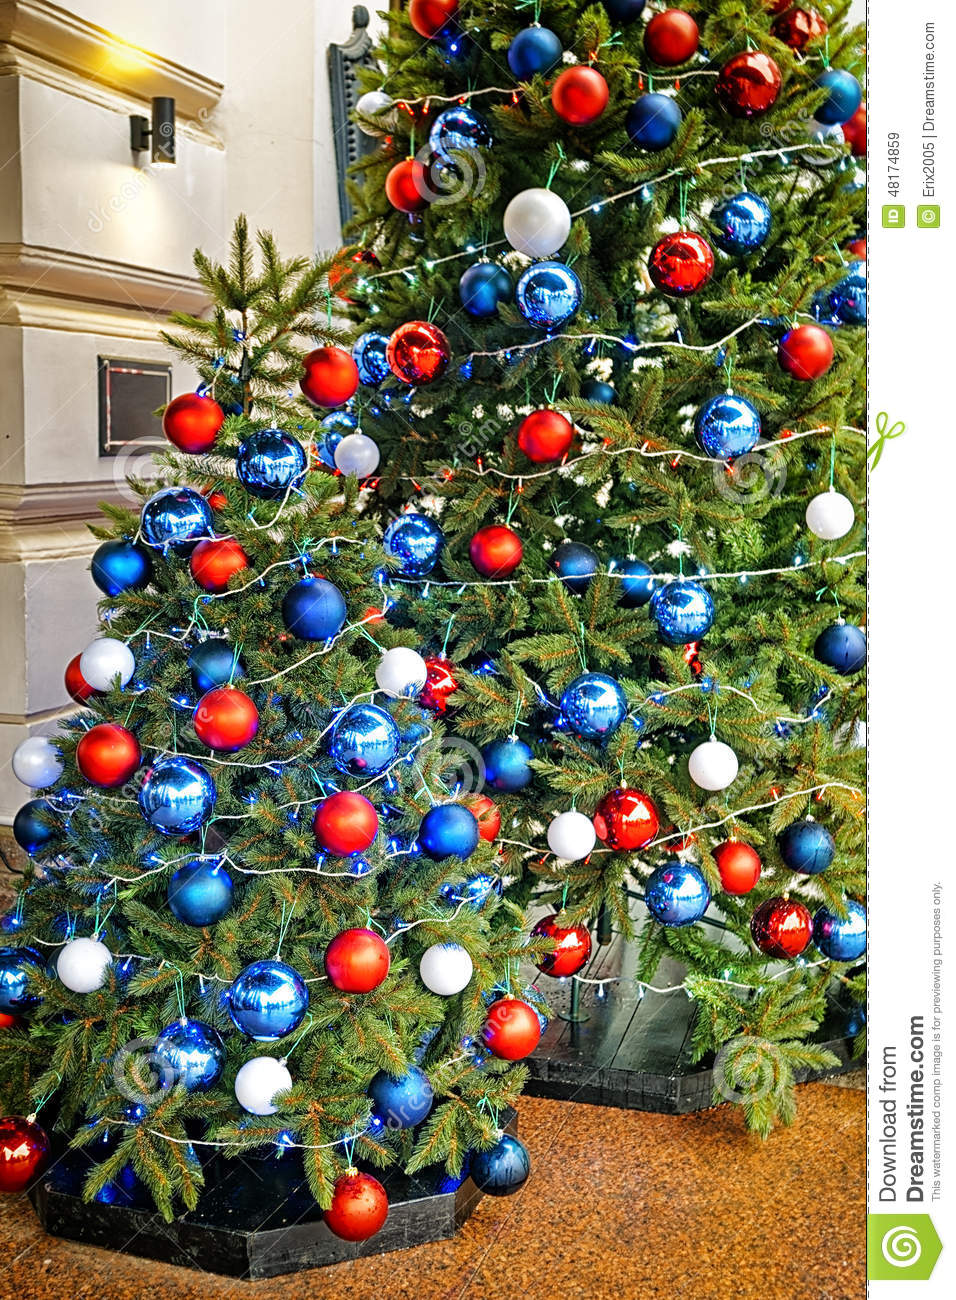 Red Blue And White Decorating Balls On The Christmas Tree